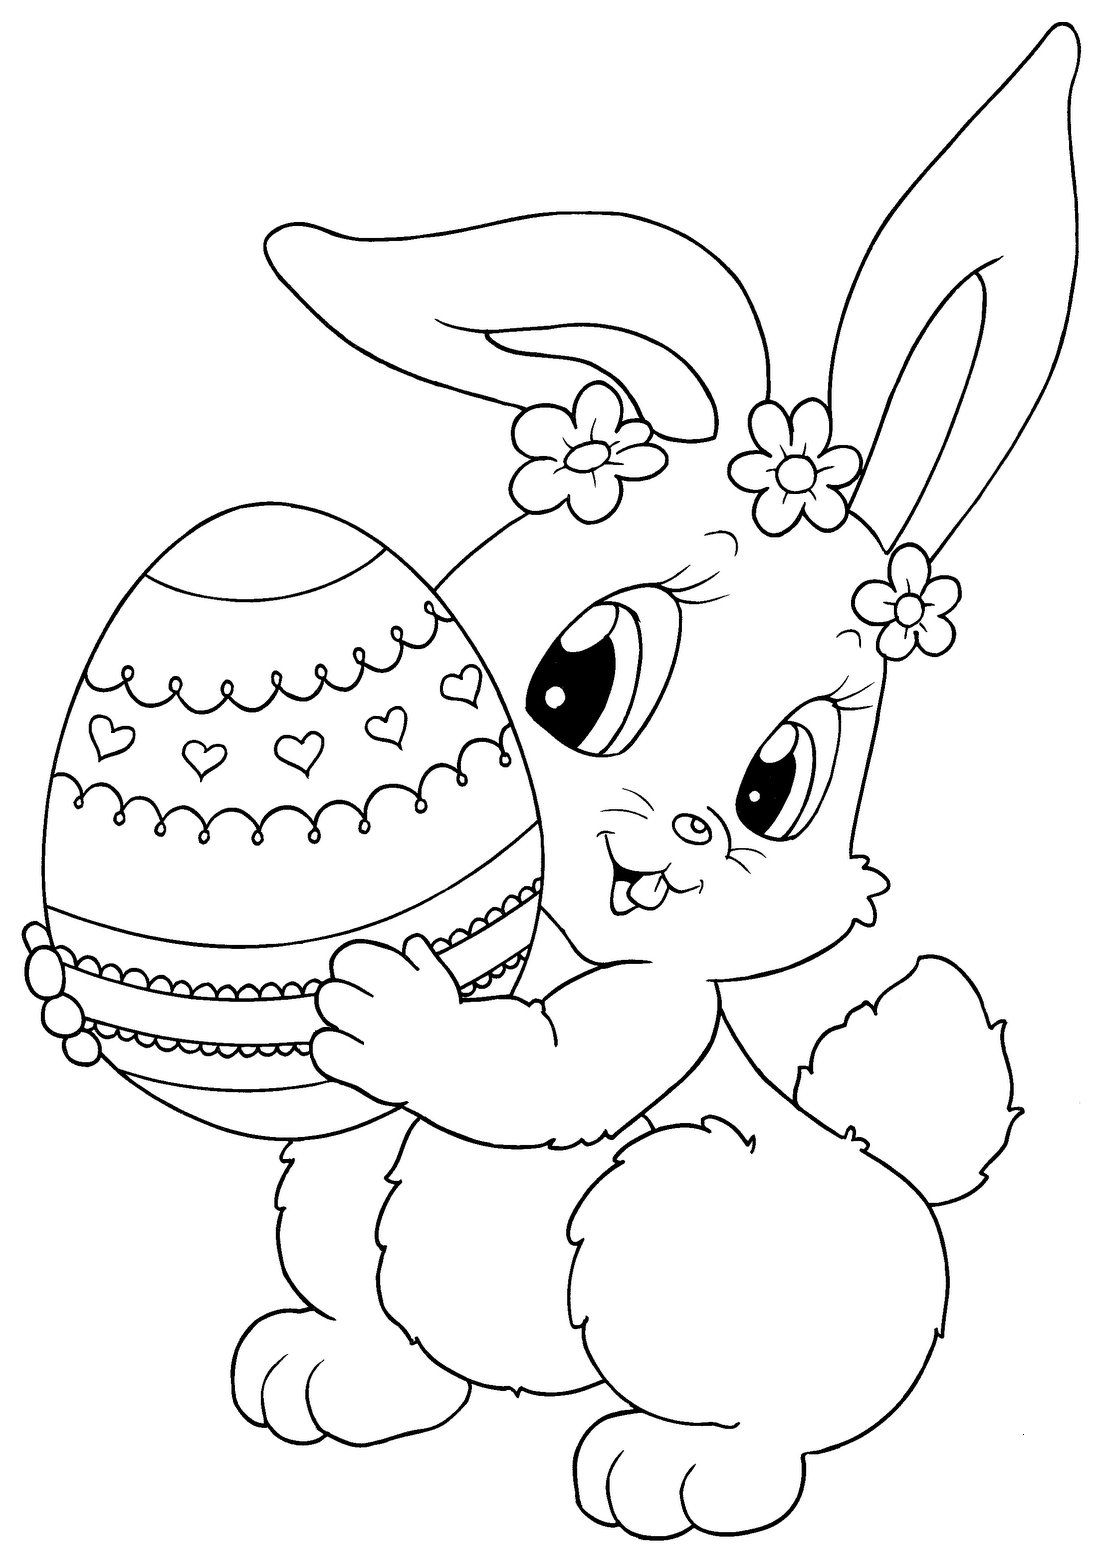 Top 15 Free Printable Easter Bunny Coloring Pages Line Gallery Of Easter Basket Coloring Pages to Print Gallery